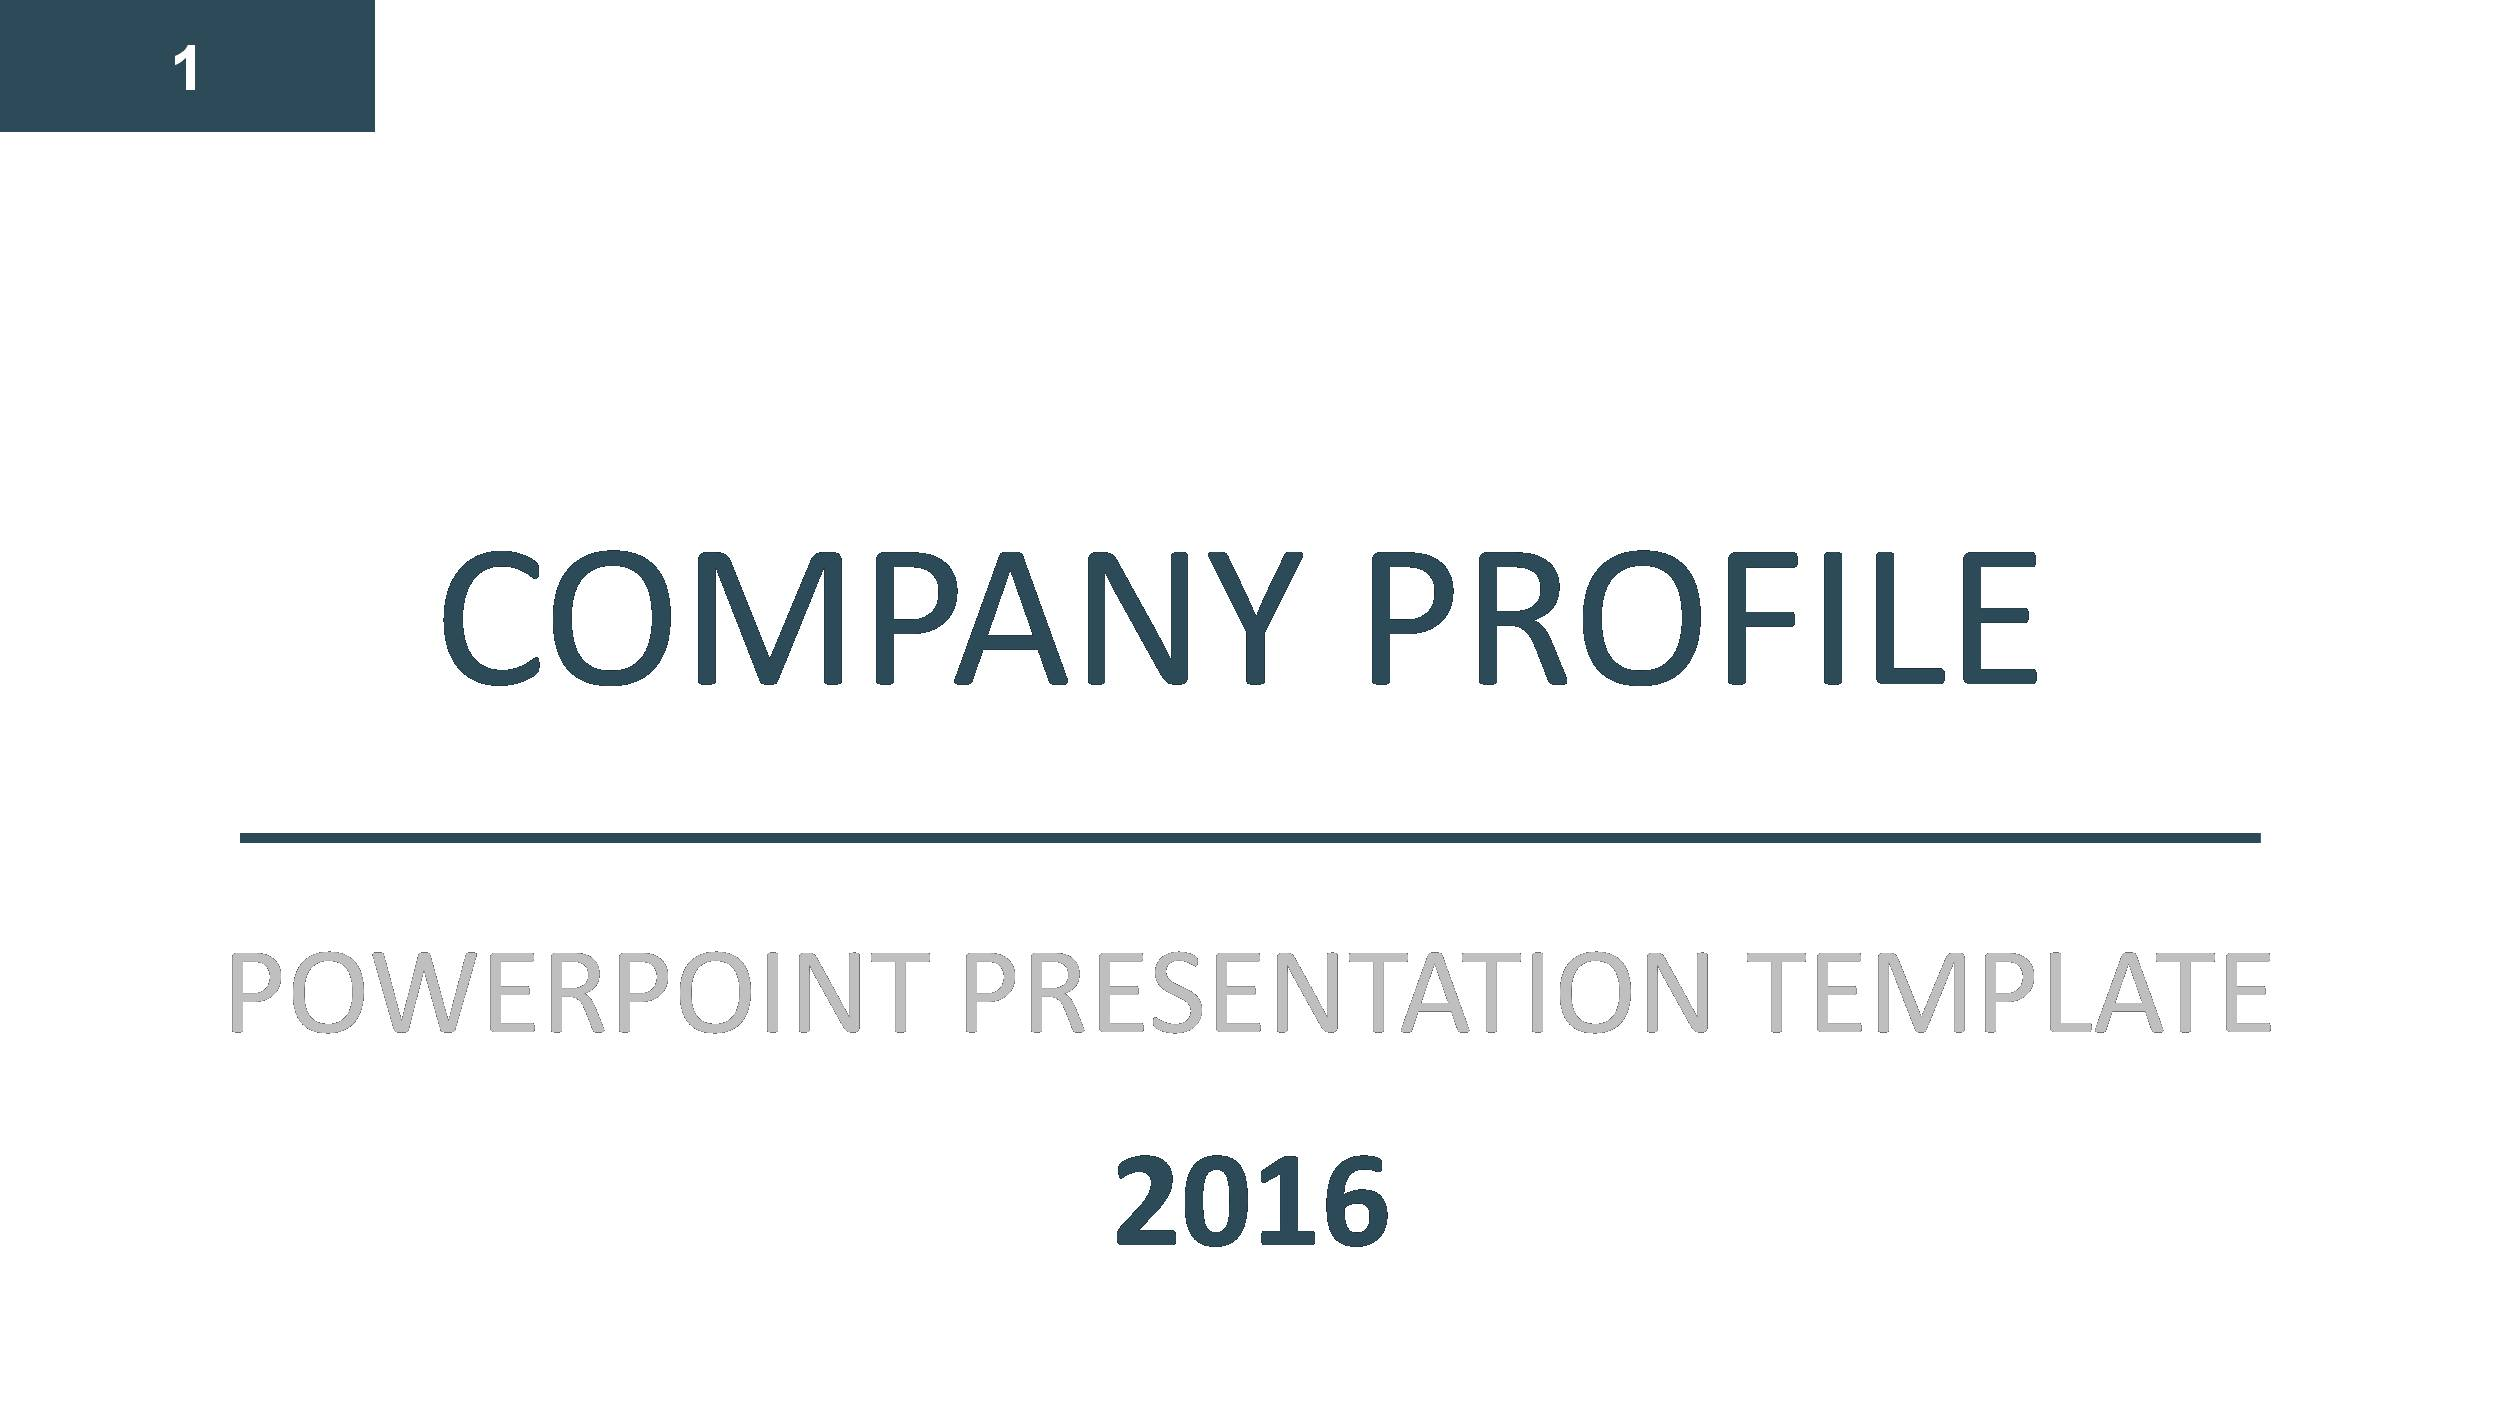 Company profile PowerPoint Presentation Template by GardeniaDesign – Template for Business Profile